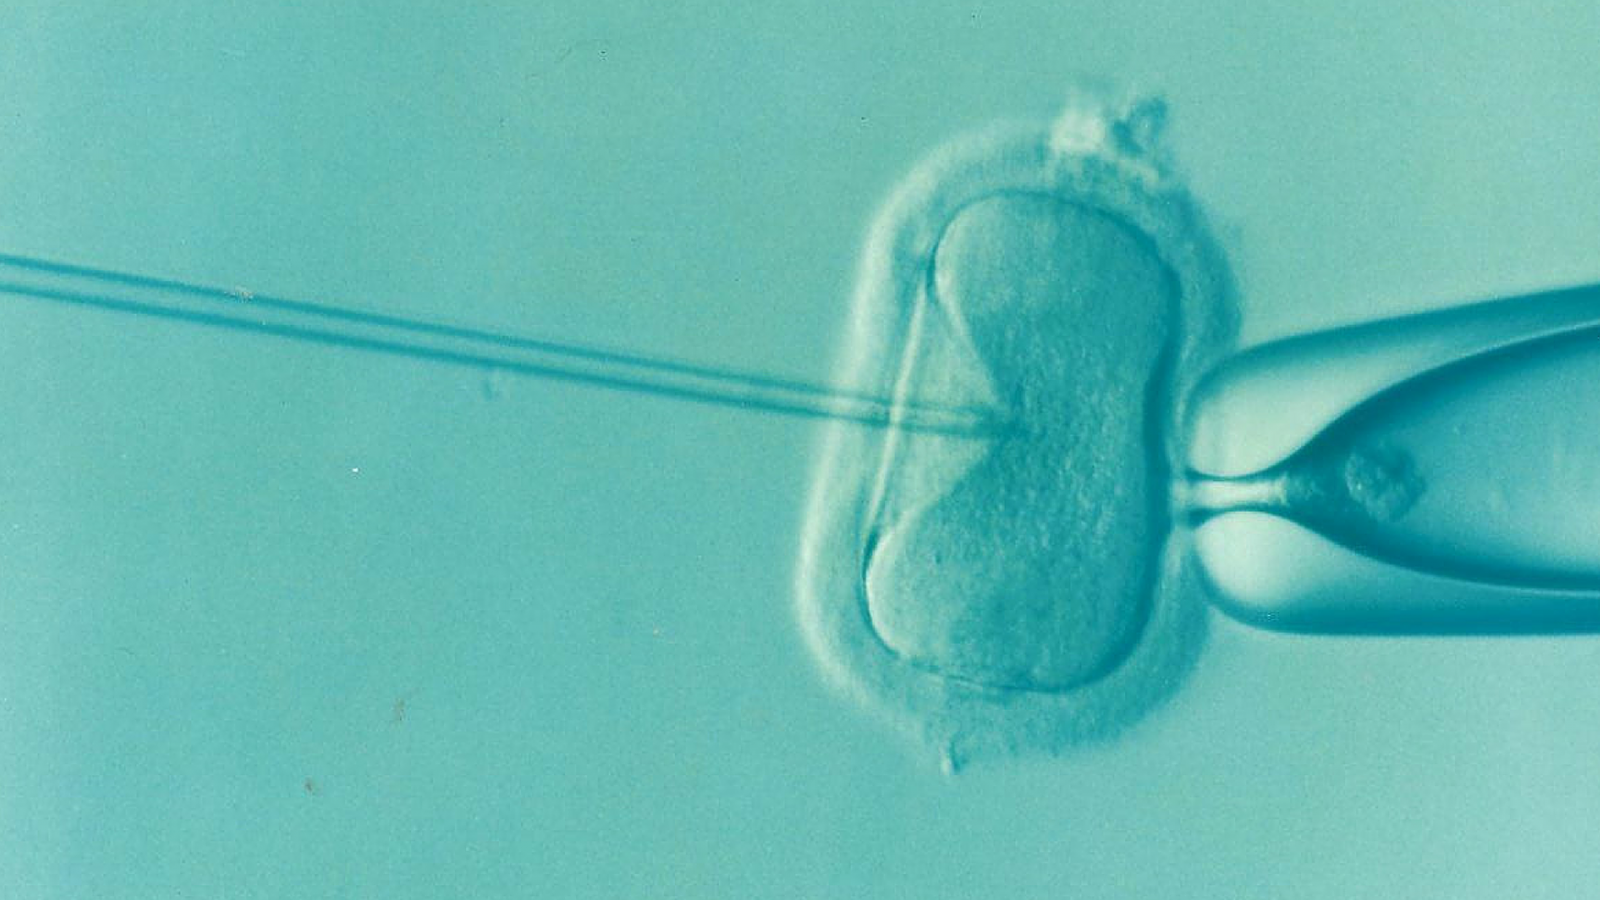 What Are Your Options If IVF Doesn't Work?